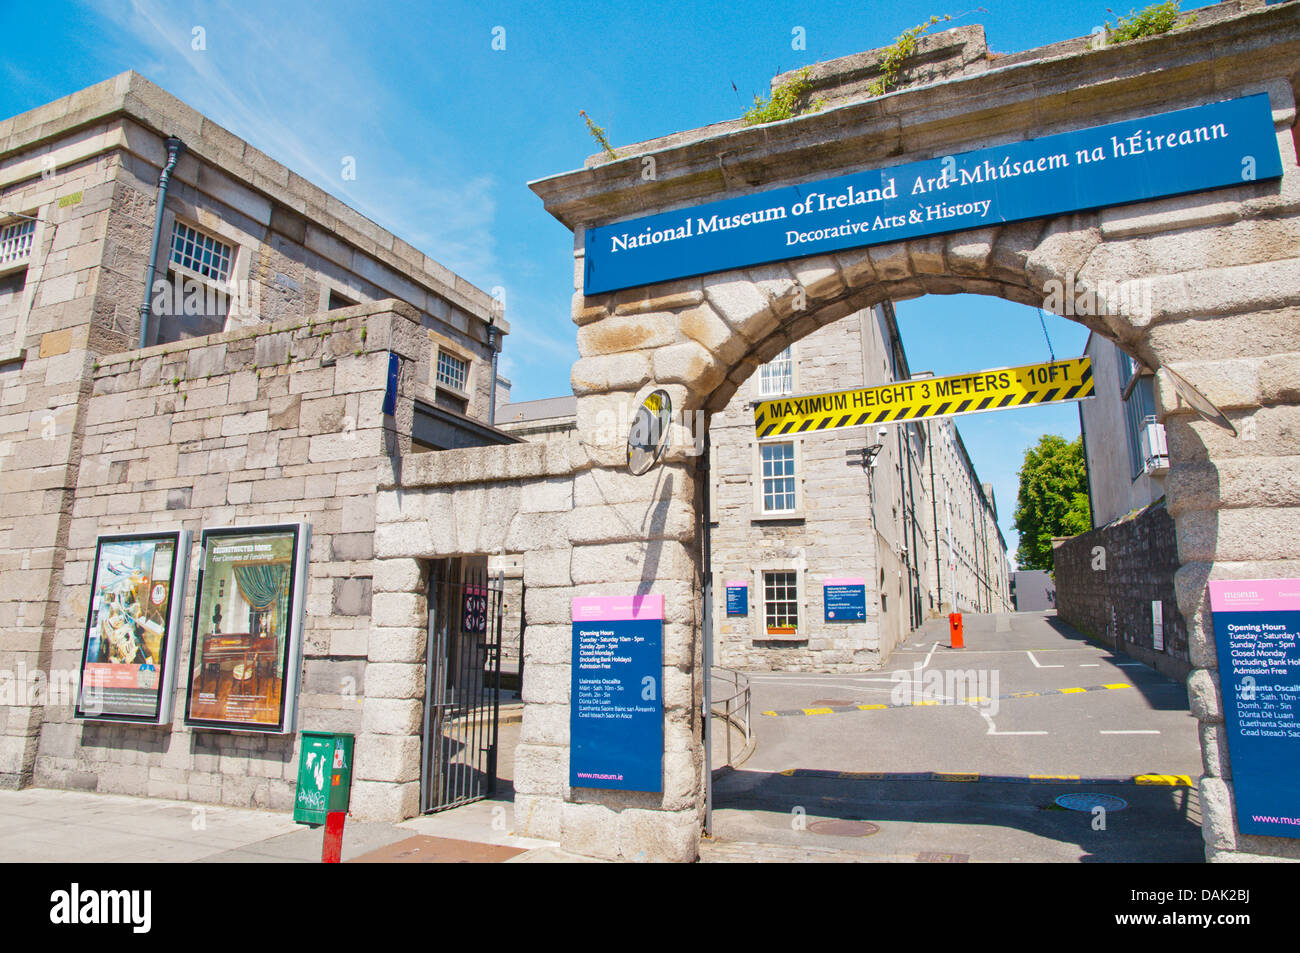 National museum of decorative arts and history Dublin Ireland Europe - Stock Image